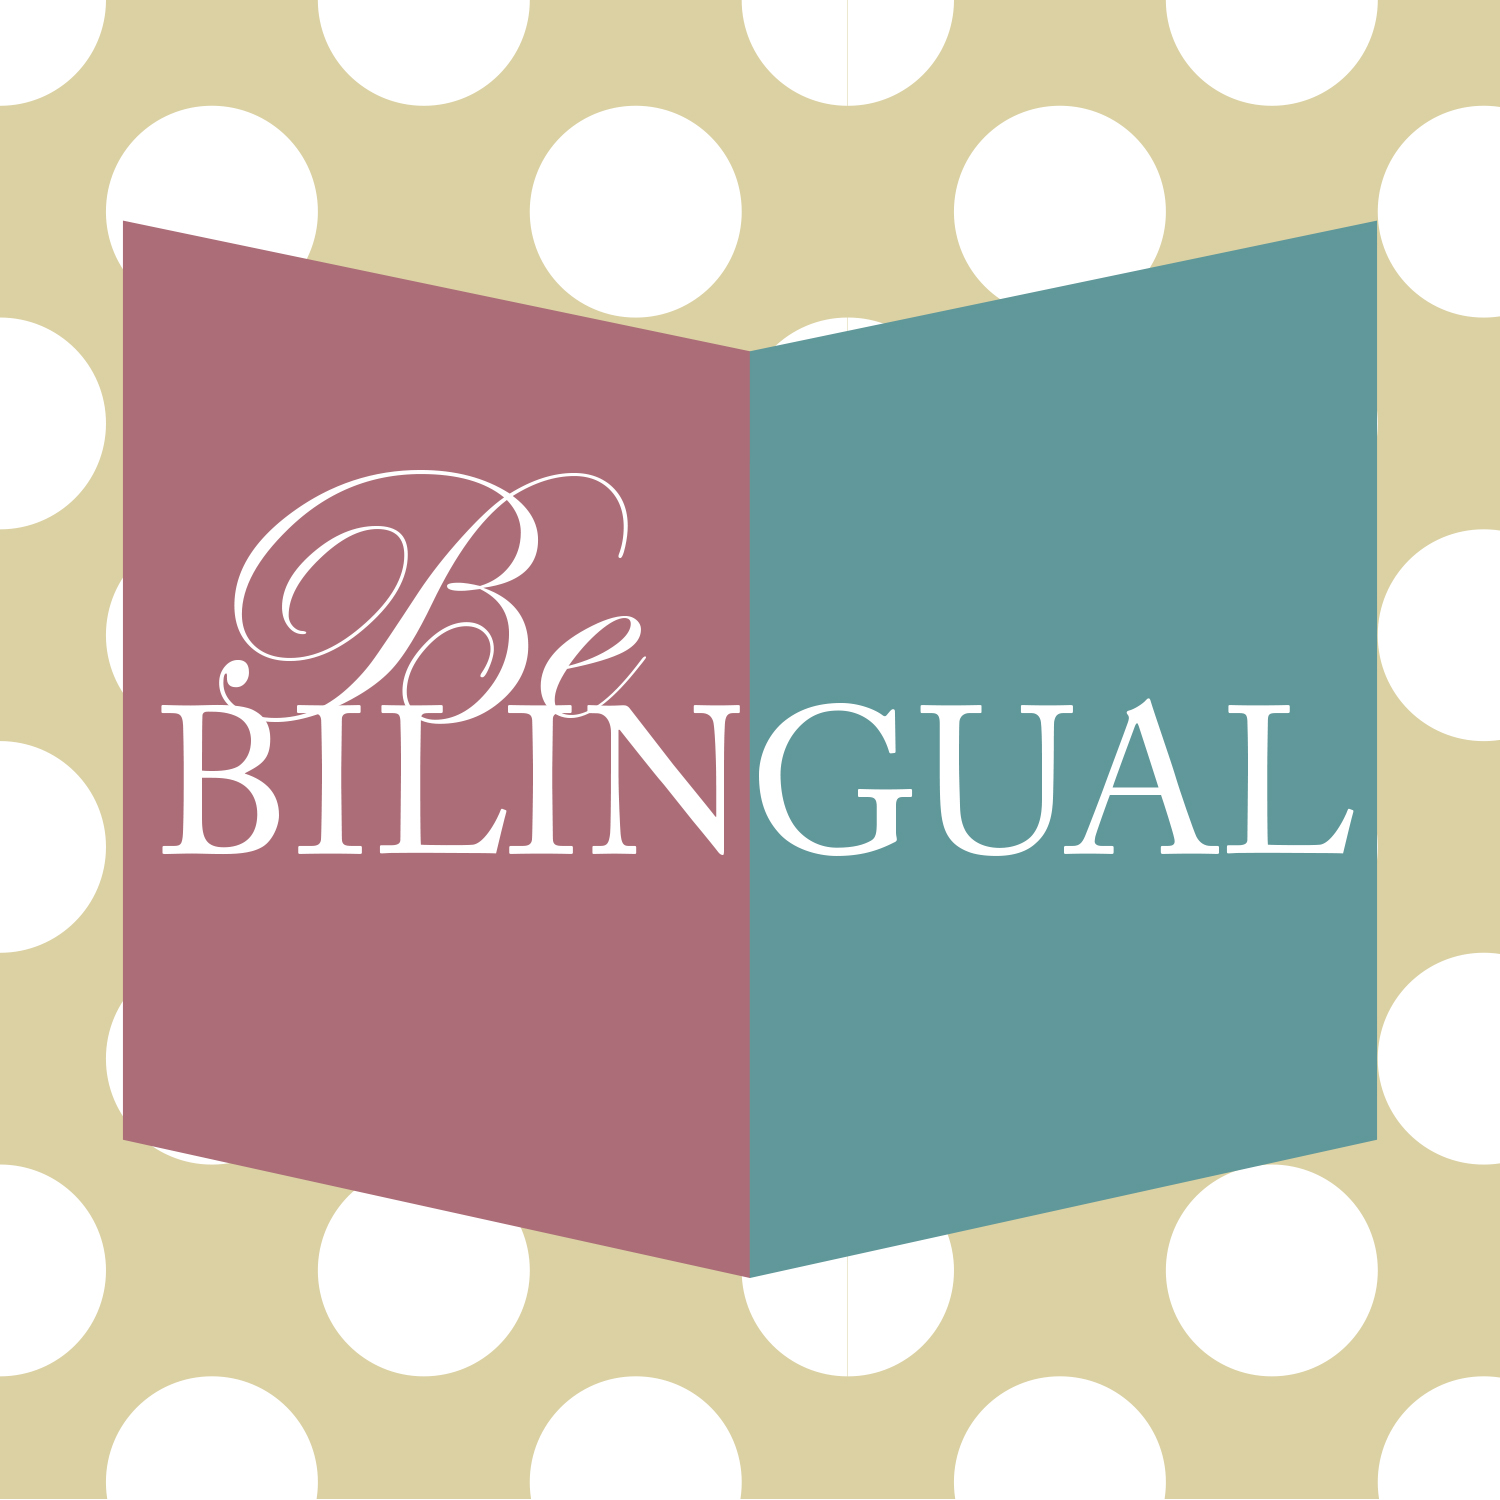 Be Bilingual